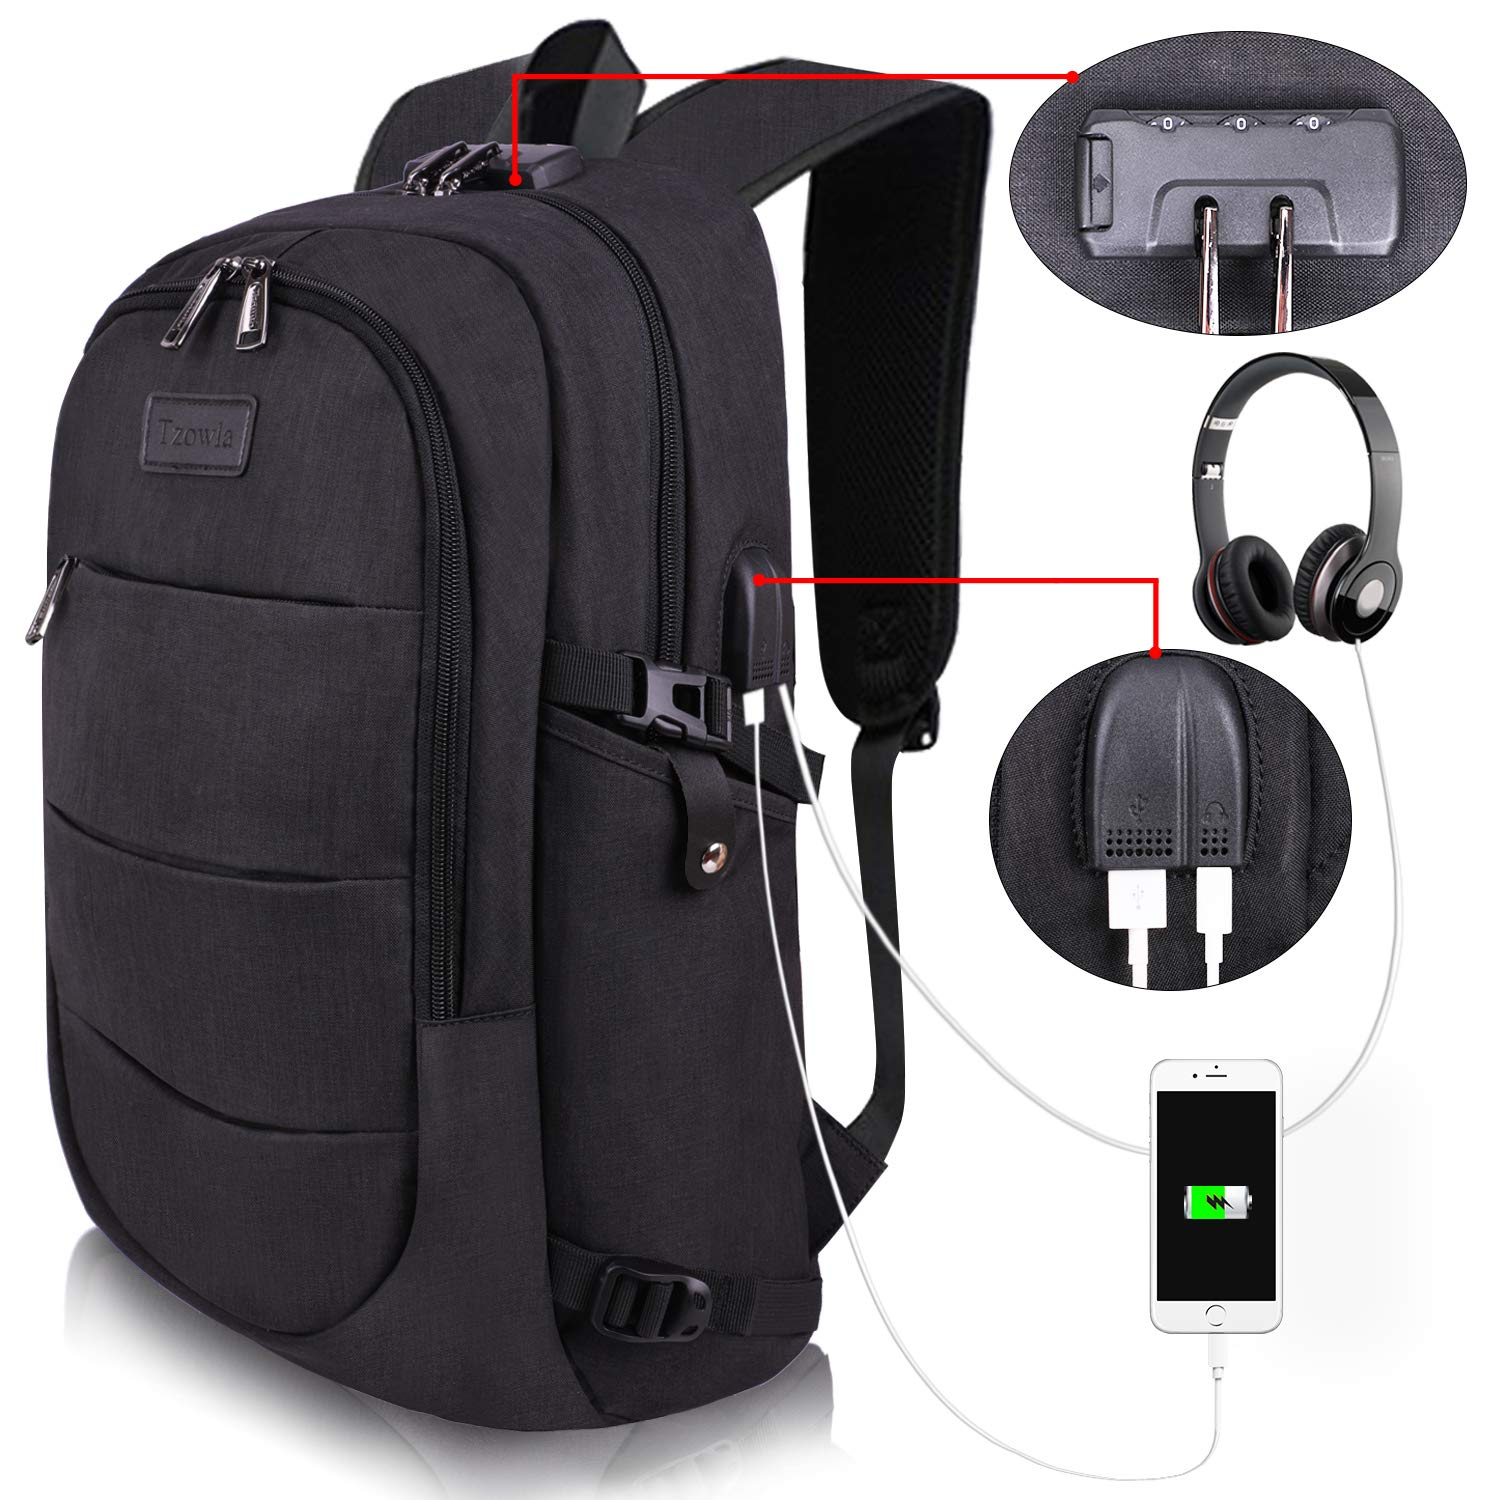 Travel laptop backpack water-resistant anti-theft bag with USB charging port and lock 14/15.6 inch computer business backpacks for women and men college school students' gift, book bag casual hiking daypack